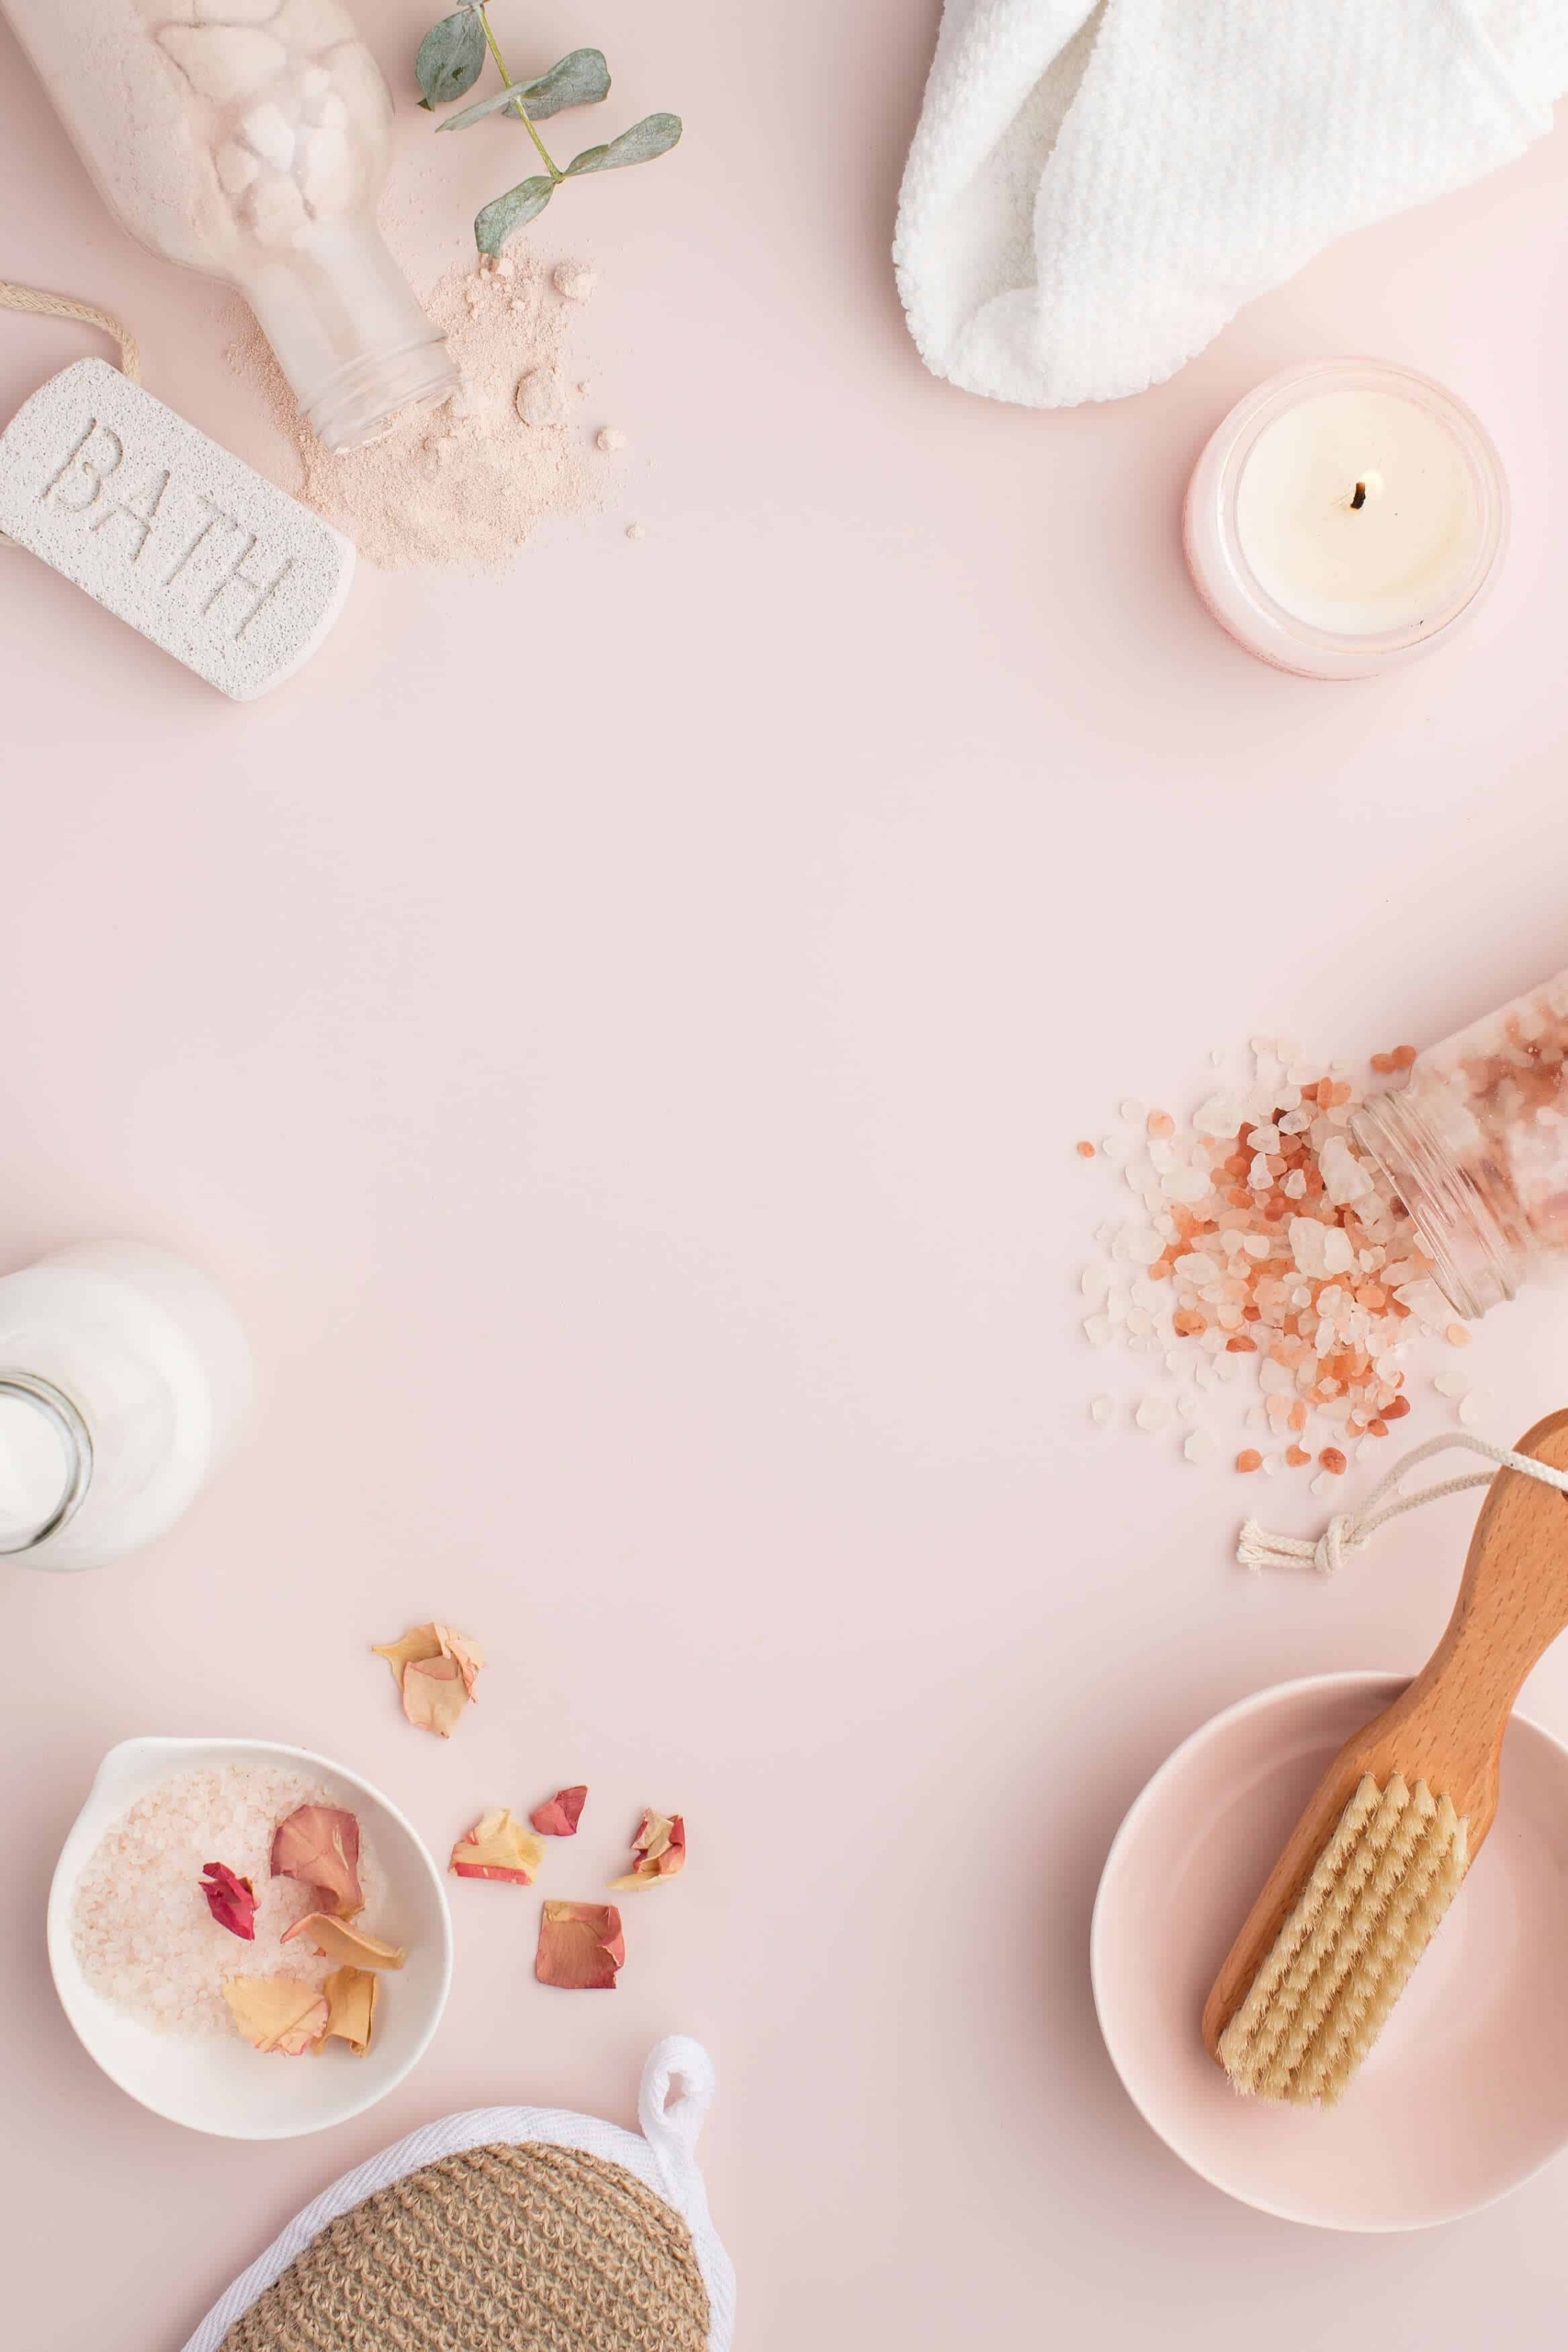 How To Get High-End Cosmetics for Drugstore Prices – From Honest Beauty!